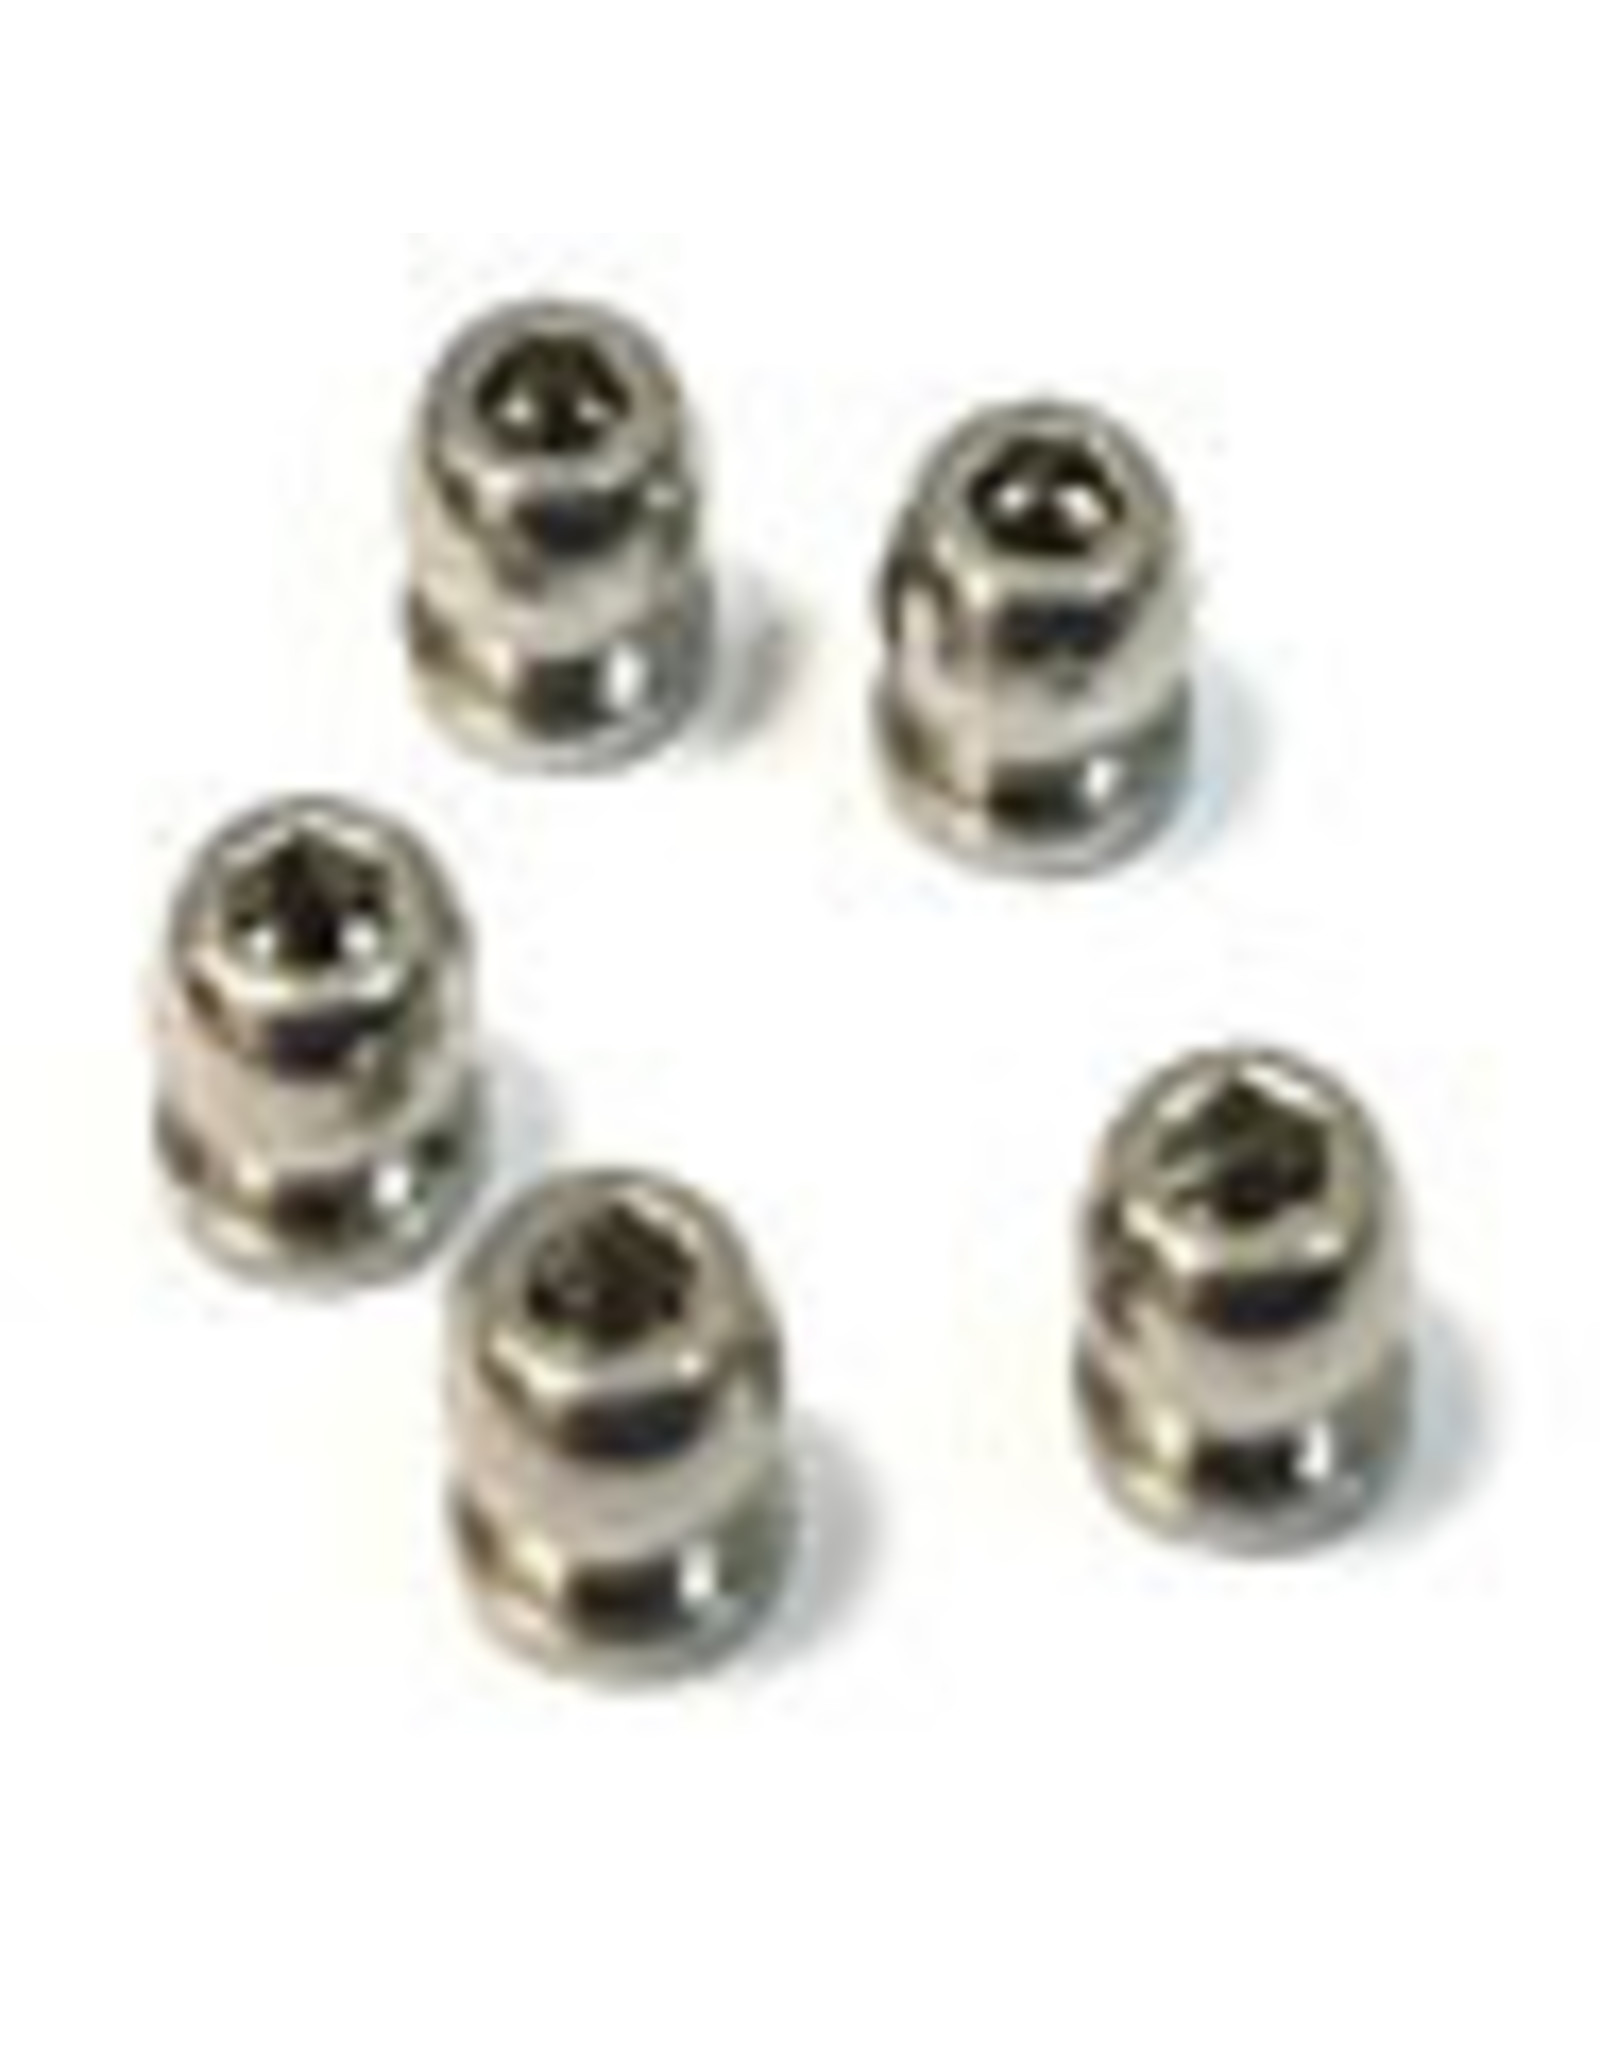 GL Racing Ball Joints 3.5mm (5pcs) (GLR-S021)